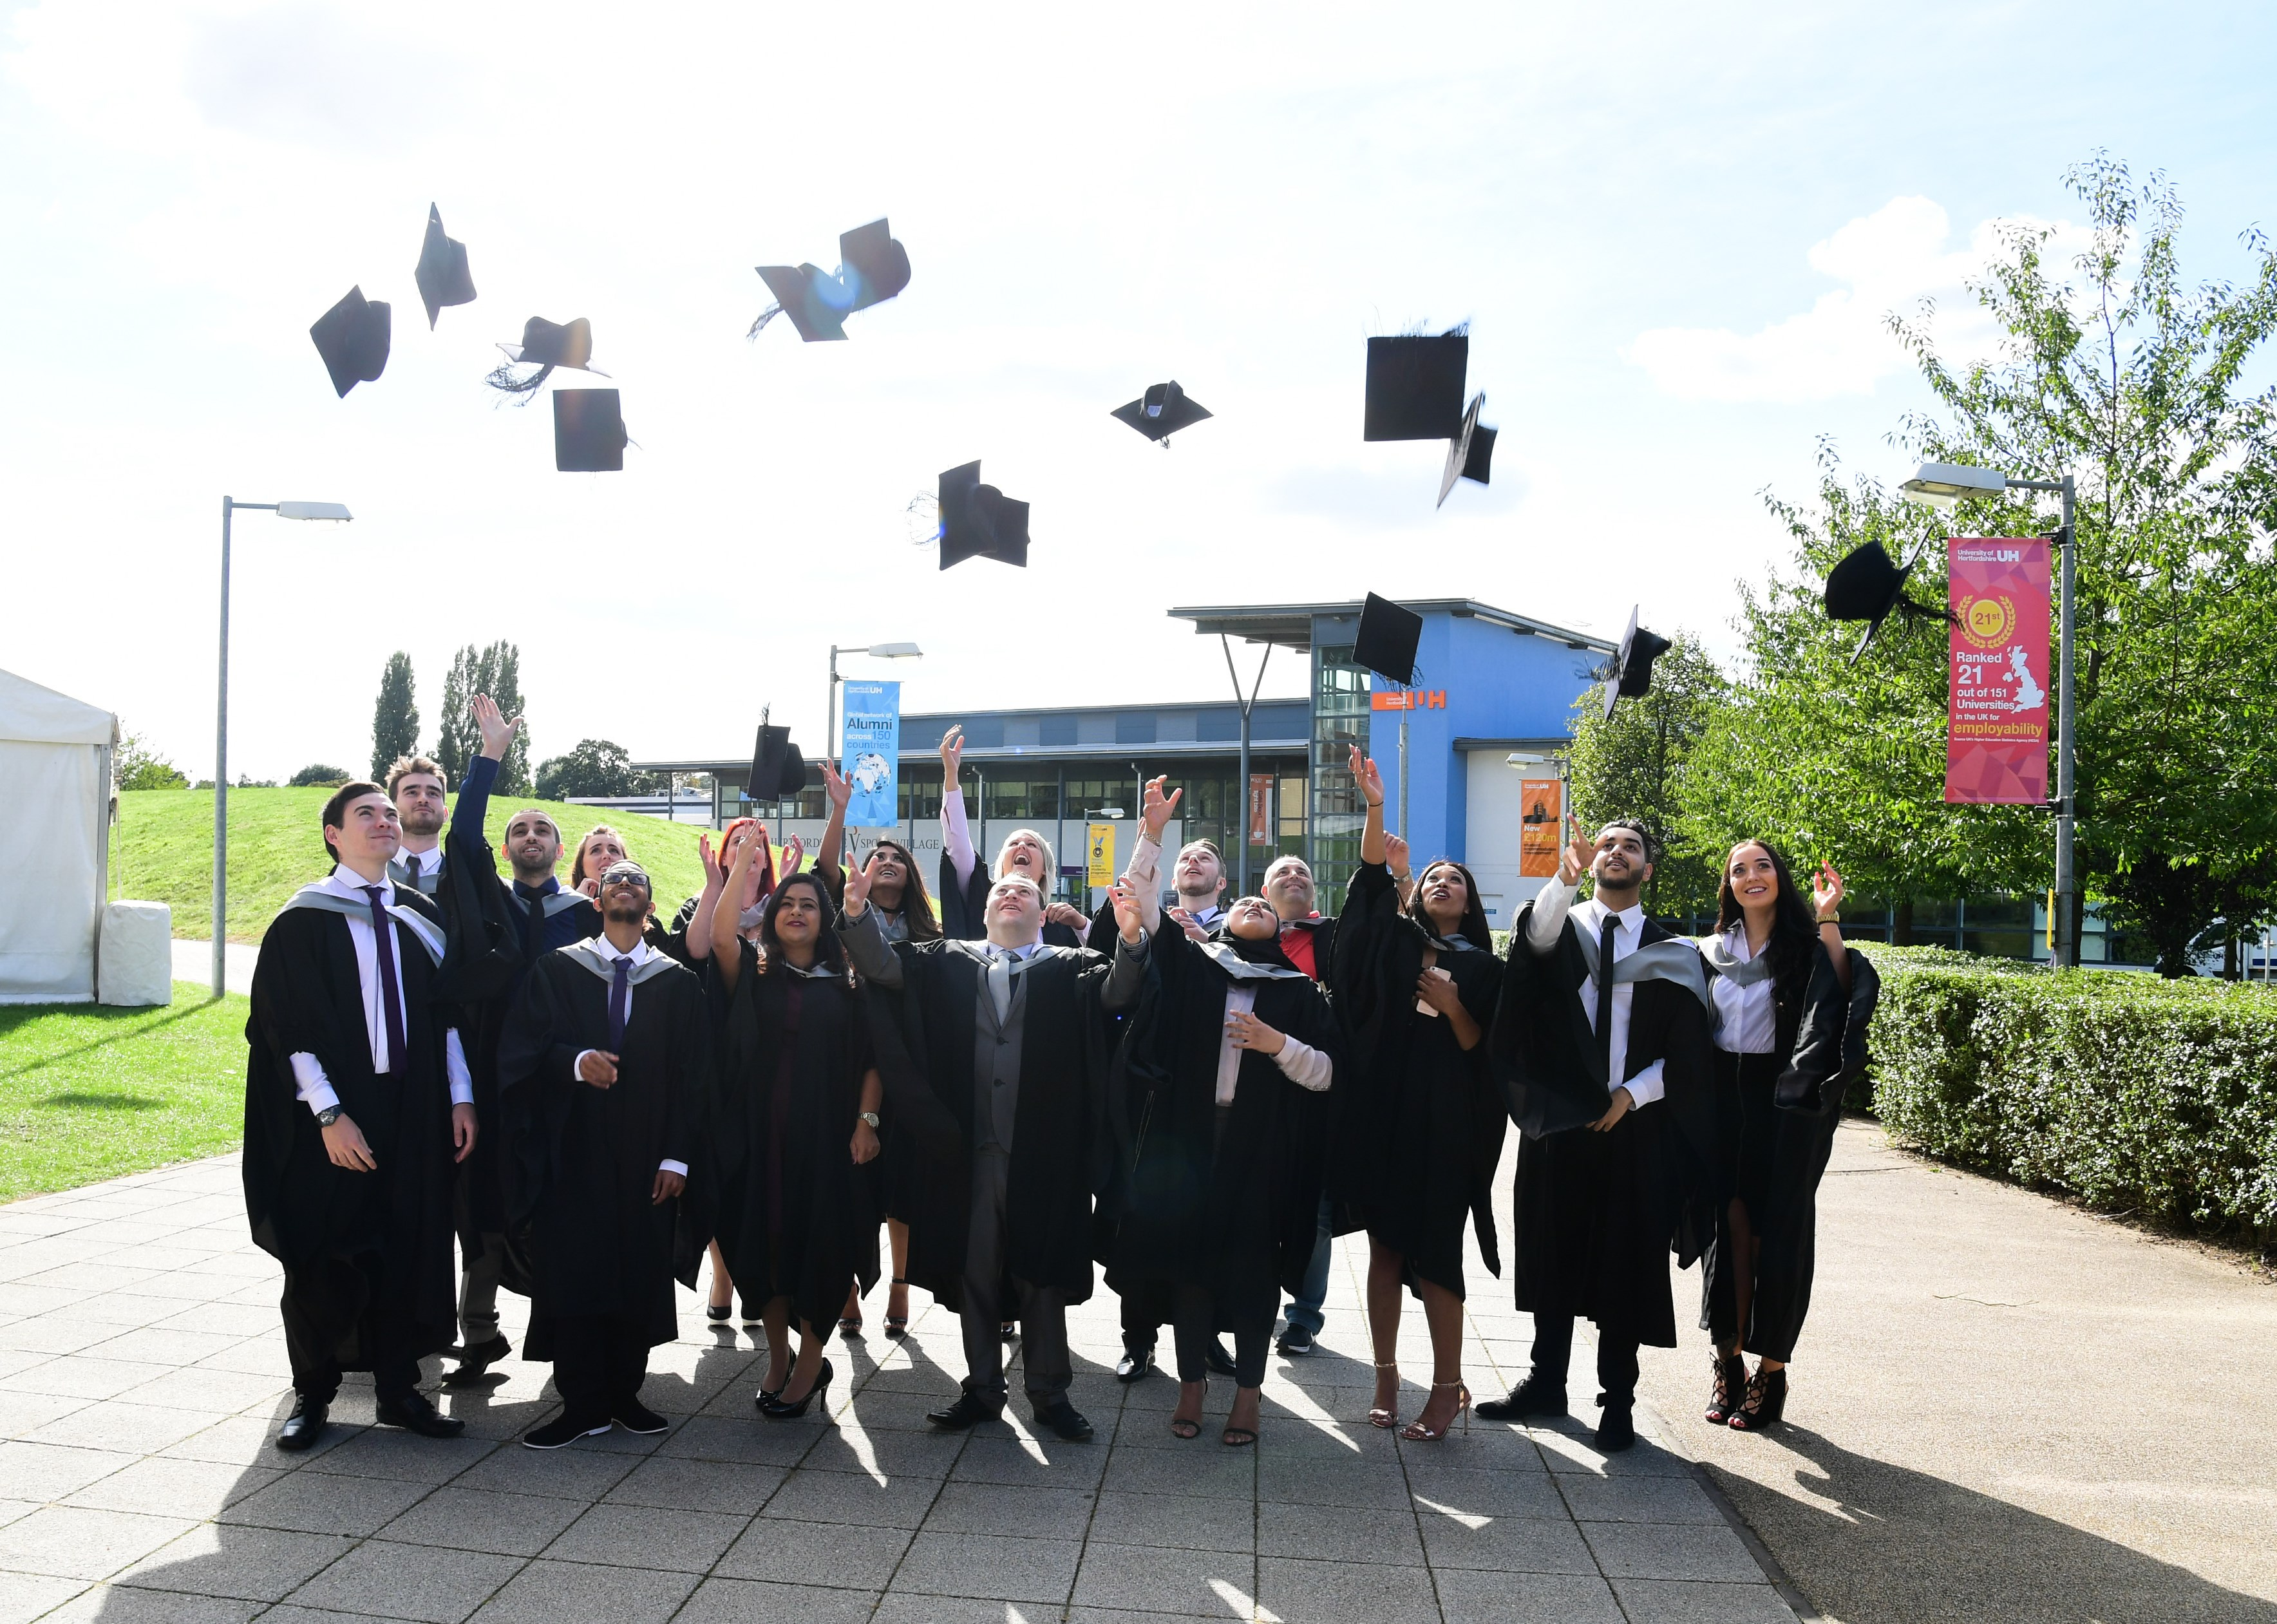 West Herts College Graduation 2016